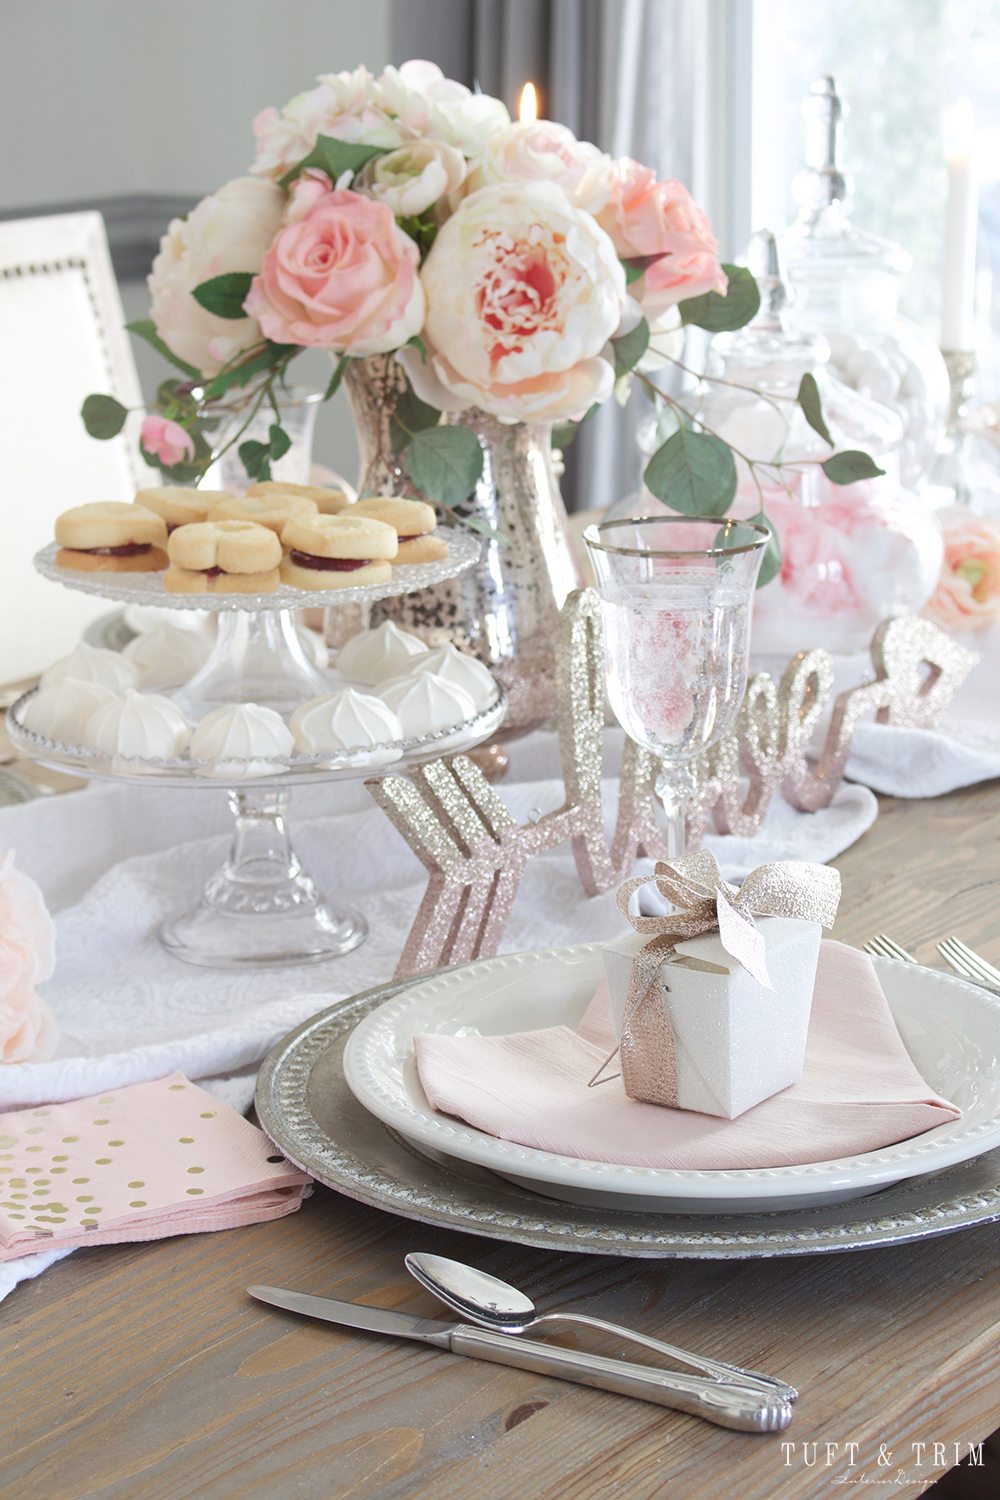 Pretty in Pink Valentines Day Tablescape Tour with Tuft u0026 Trim & Pretty in Pink: Valentines Day Tablescape Tour - Tuft u0026 Trim